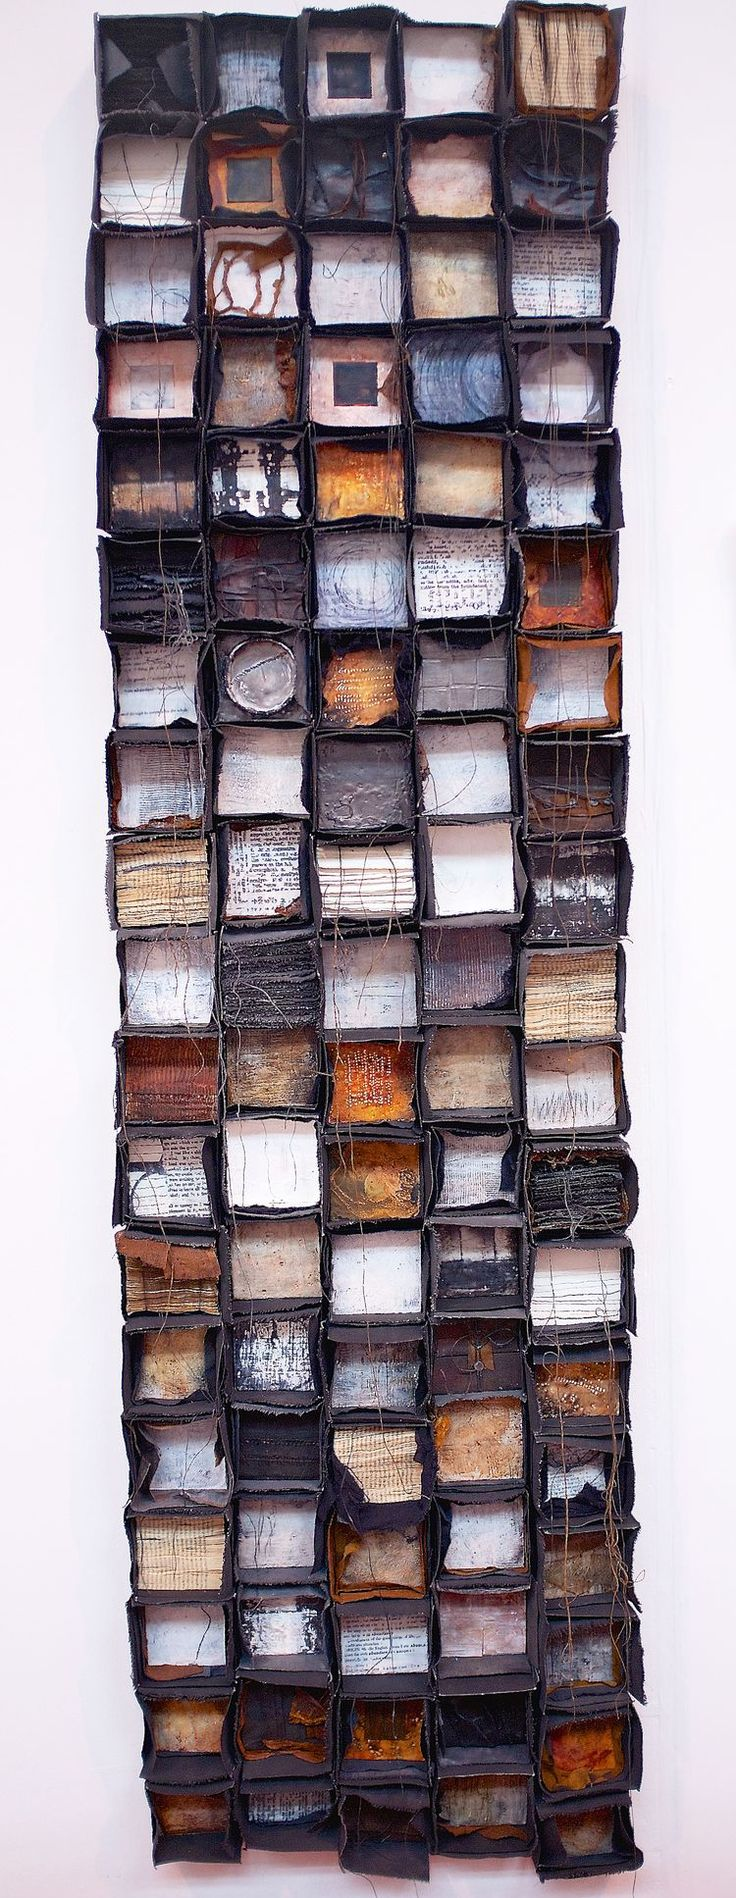 """http://www.marymorris.co.uk/#/profusion/  Mary Morris """"Profusion""""  Mary uses mixed media to create a 3-dimensional grid that exists on it's own. The different textures and elements are very visually stimulating."""